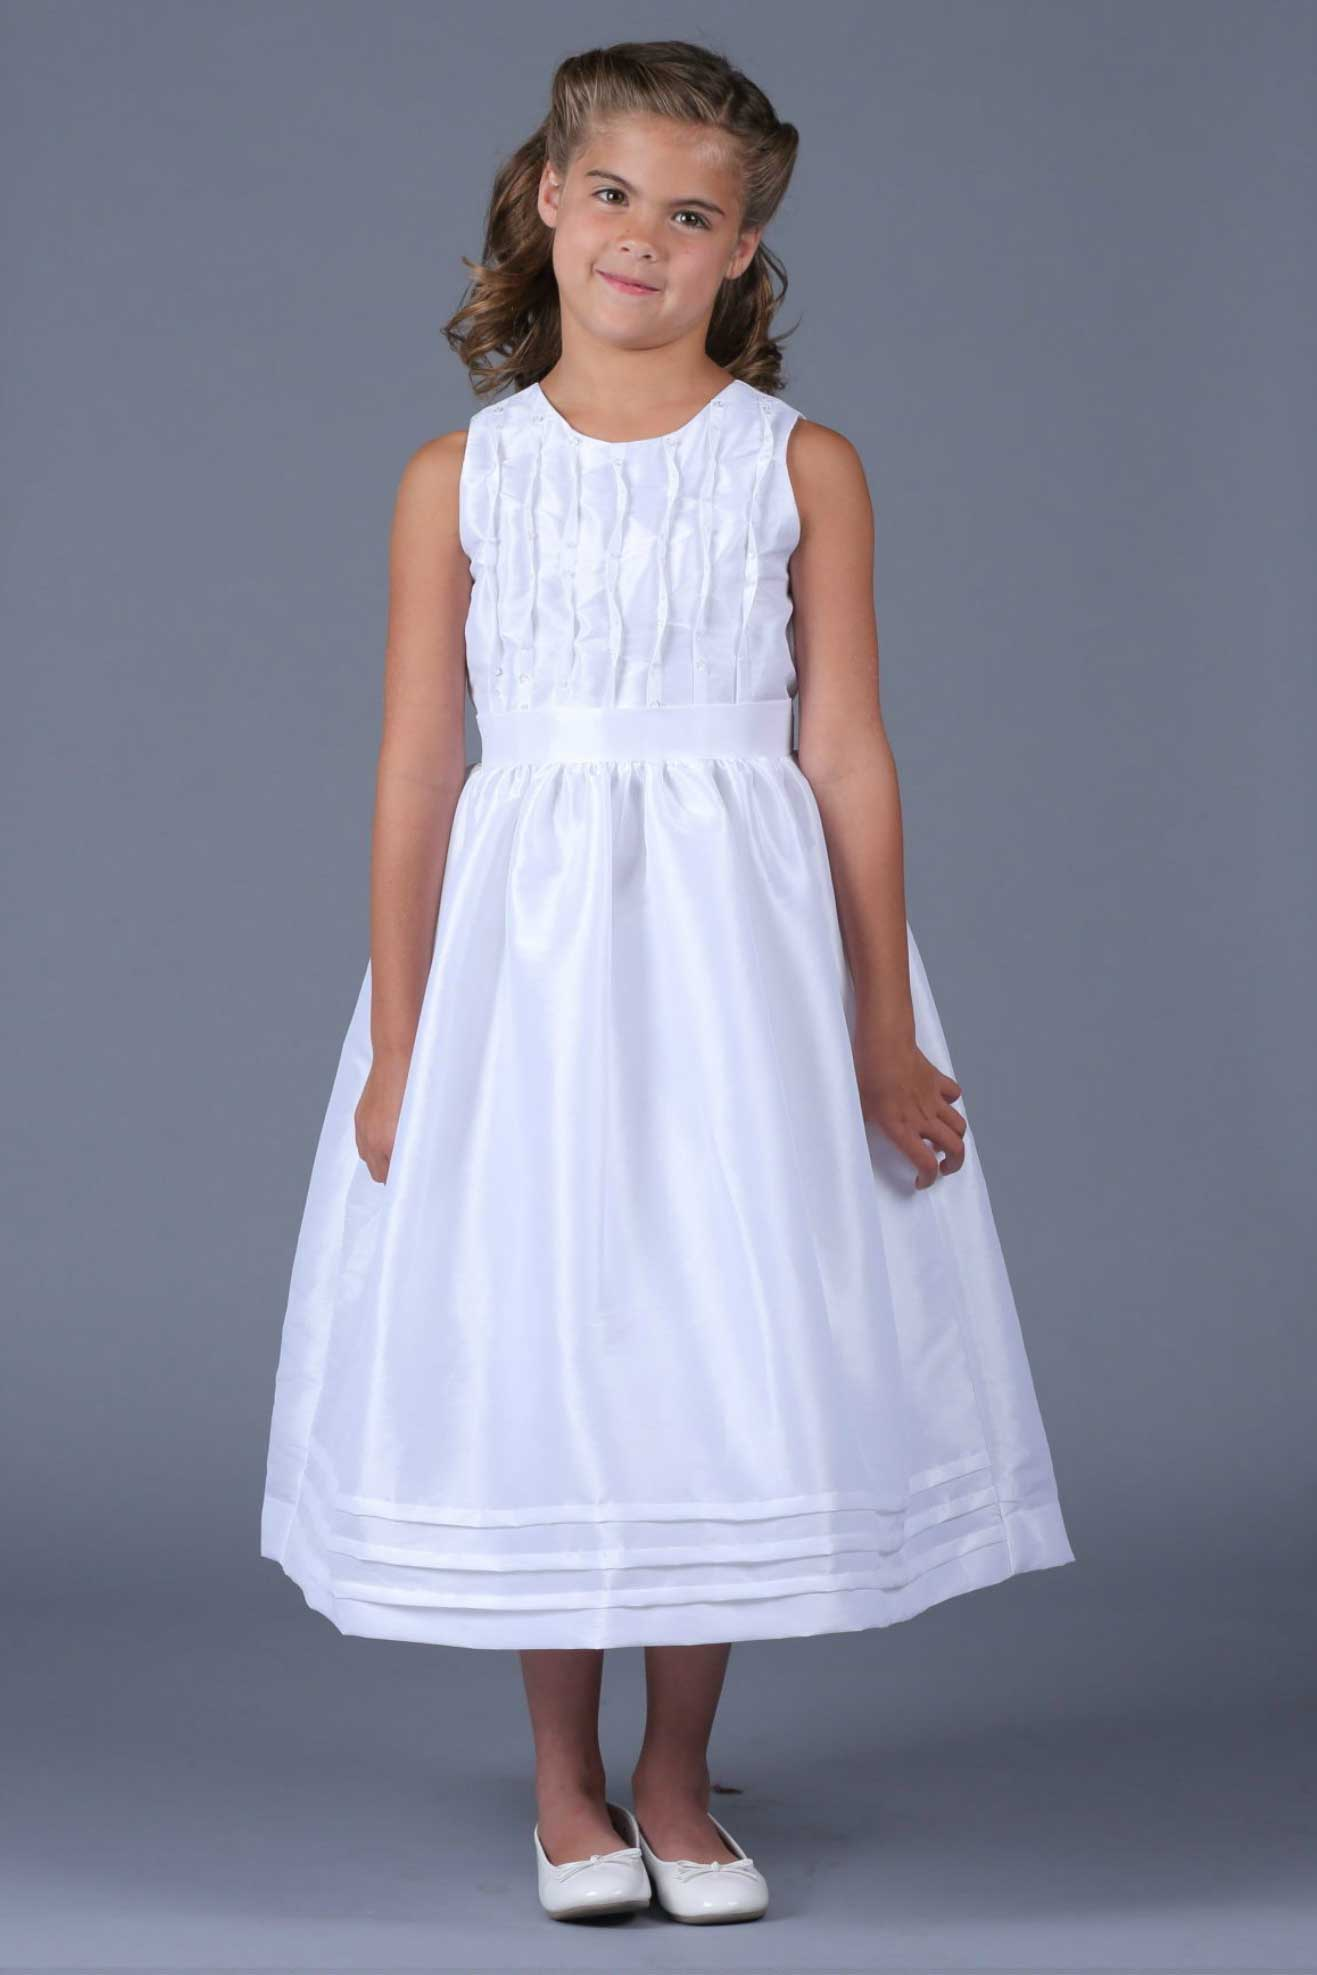 Ic 9231 Girls Dress Style 9231 Isobella And Chloe